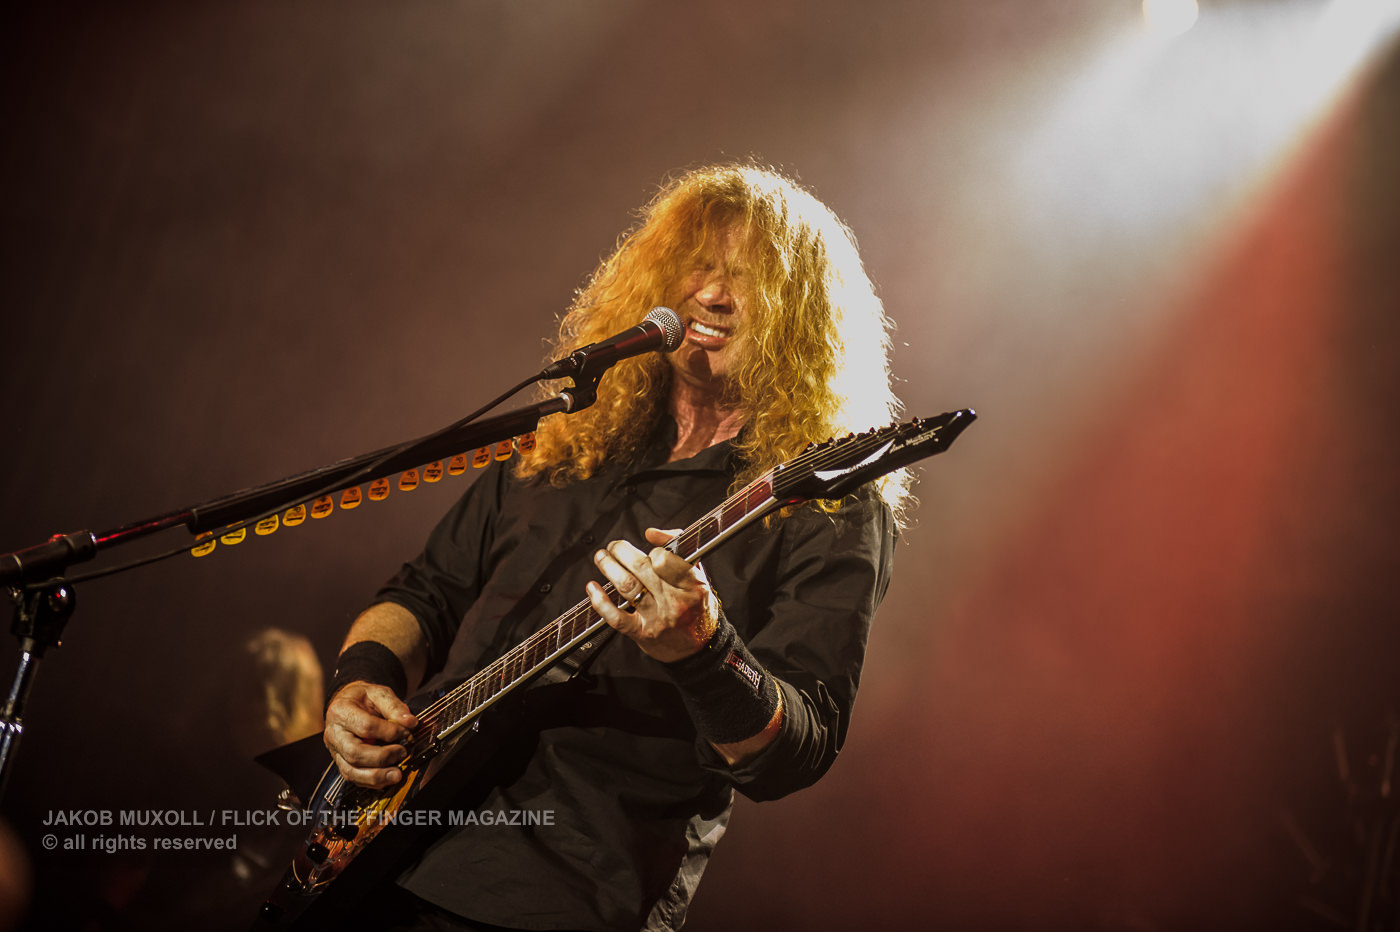 Dave mustaine photo gallery Metallica: The early days in pictures Music The Guardian